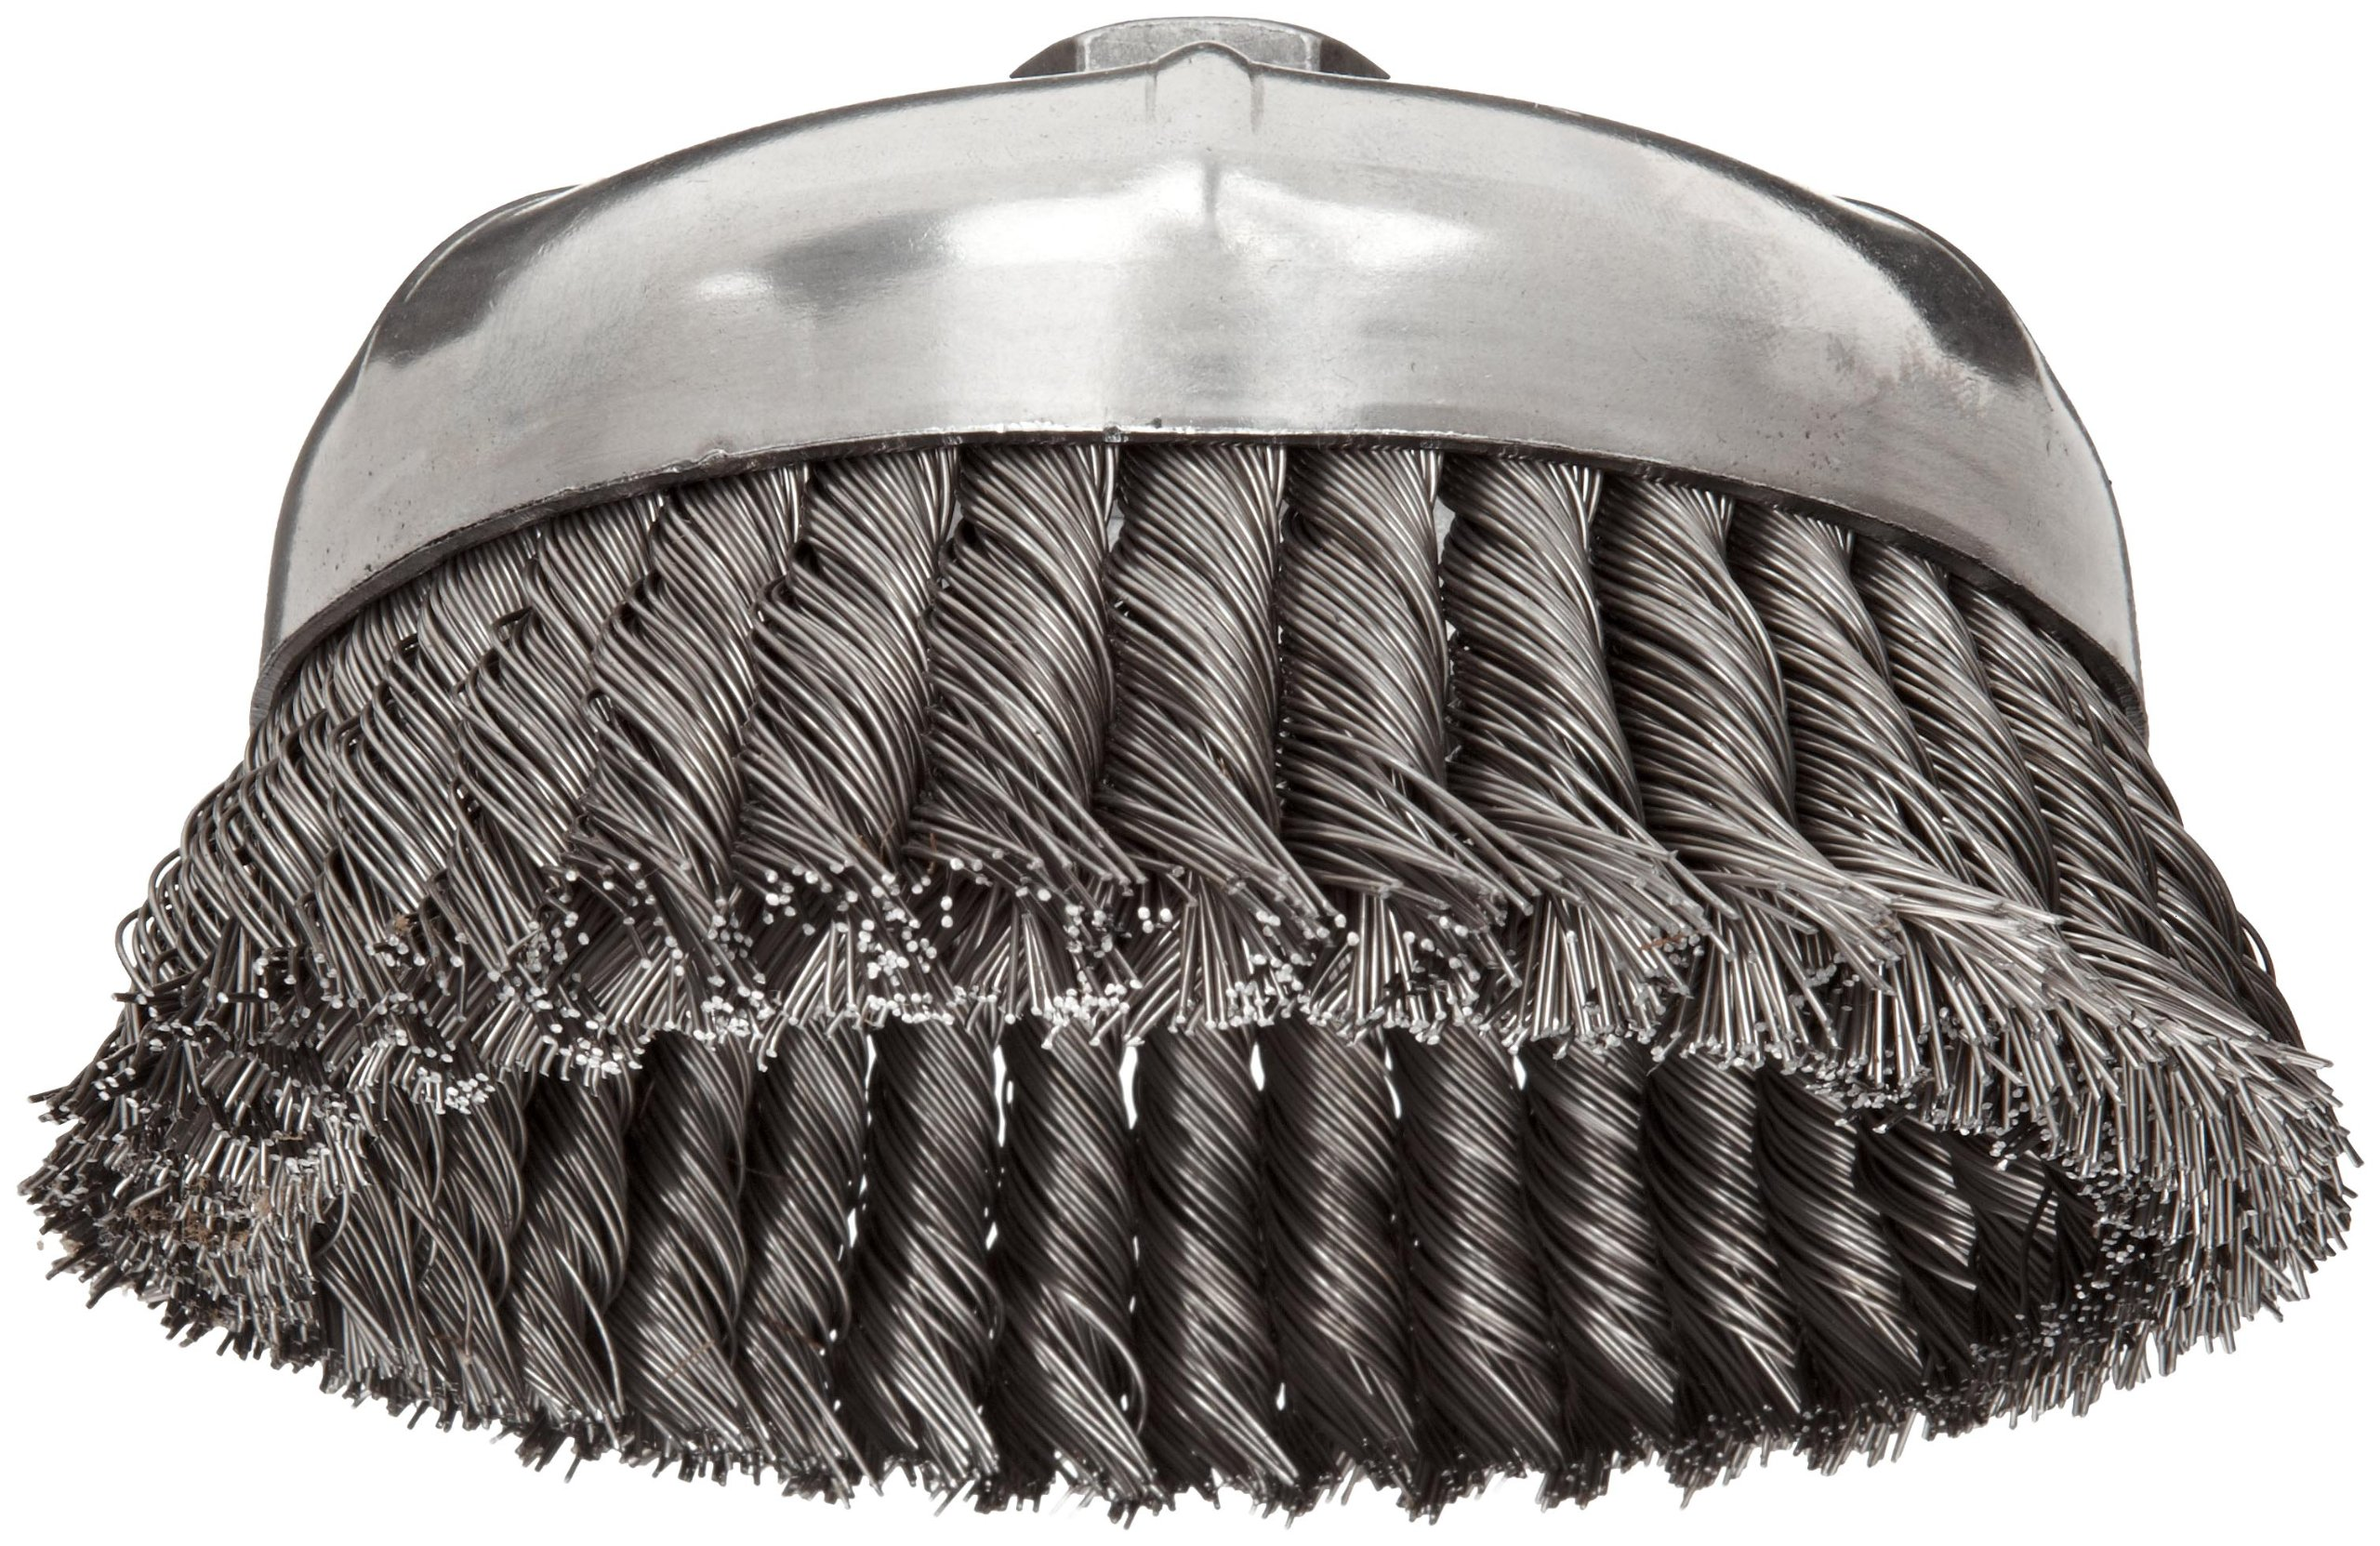 Weiler Wire Cup Brush, Threaded Hole, Steel, Partial Twist Knotted, Single Row, 6'' Diameter, 0.023'' Wire Diameter, 5/8''-11 Arbor, 1-3/8'' Bristle Length, 6600 rpm (Pack of 1) by Weiler